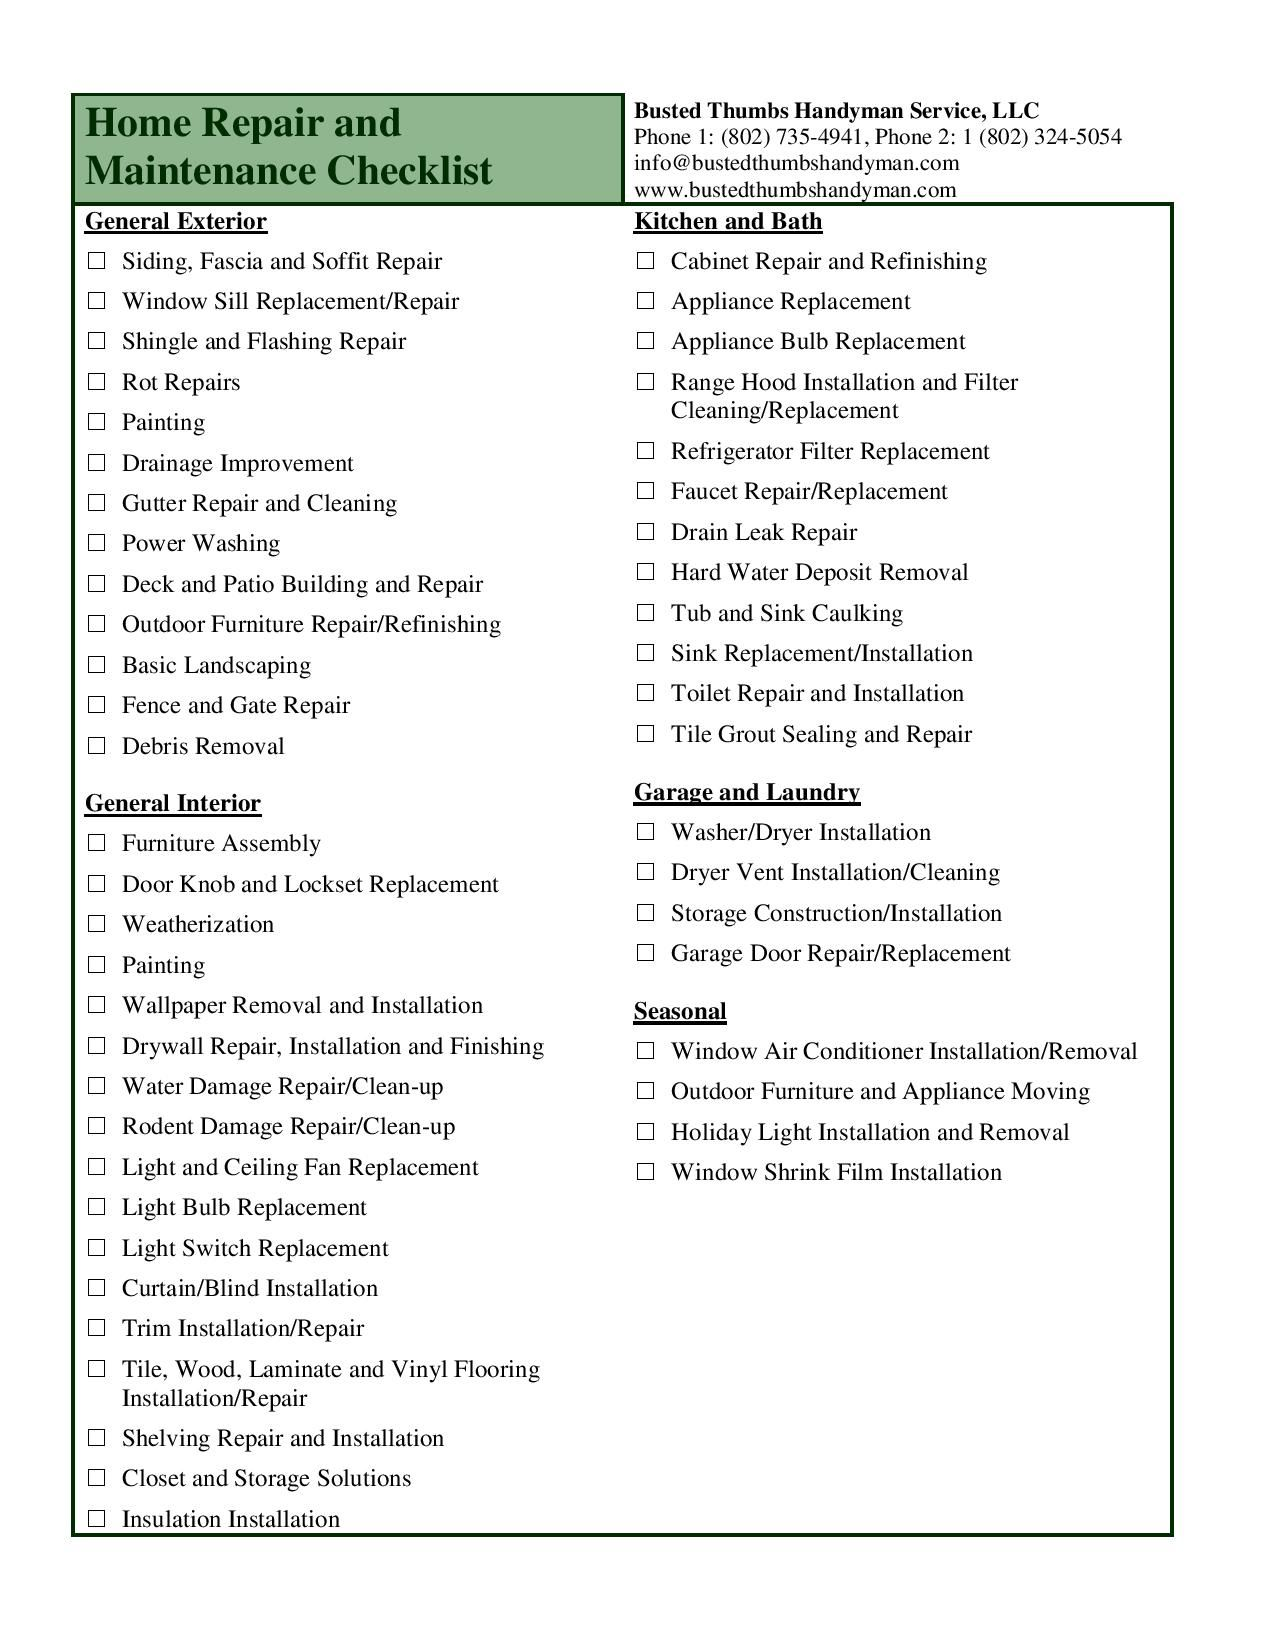 Home Remodeling Project Checklist  MlthreeCom  For The Home